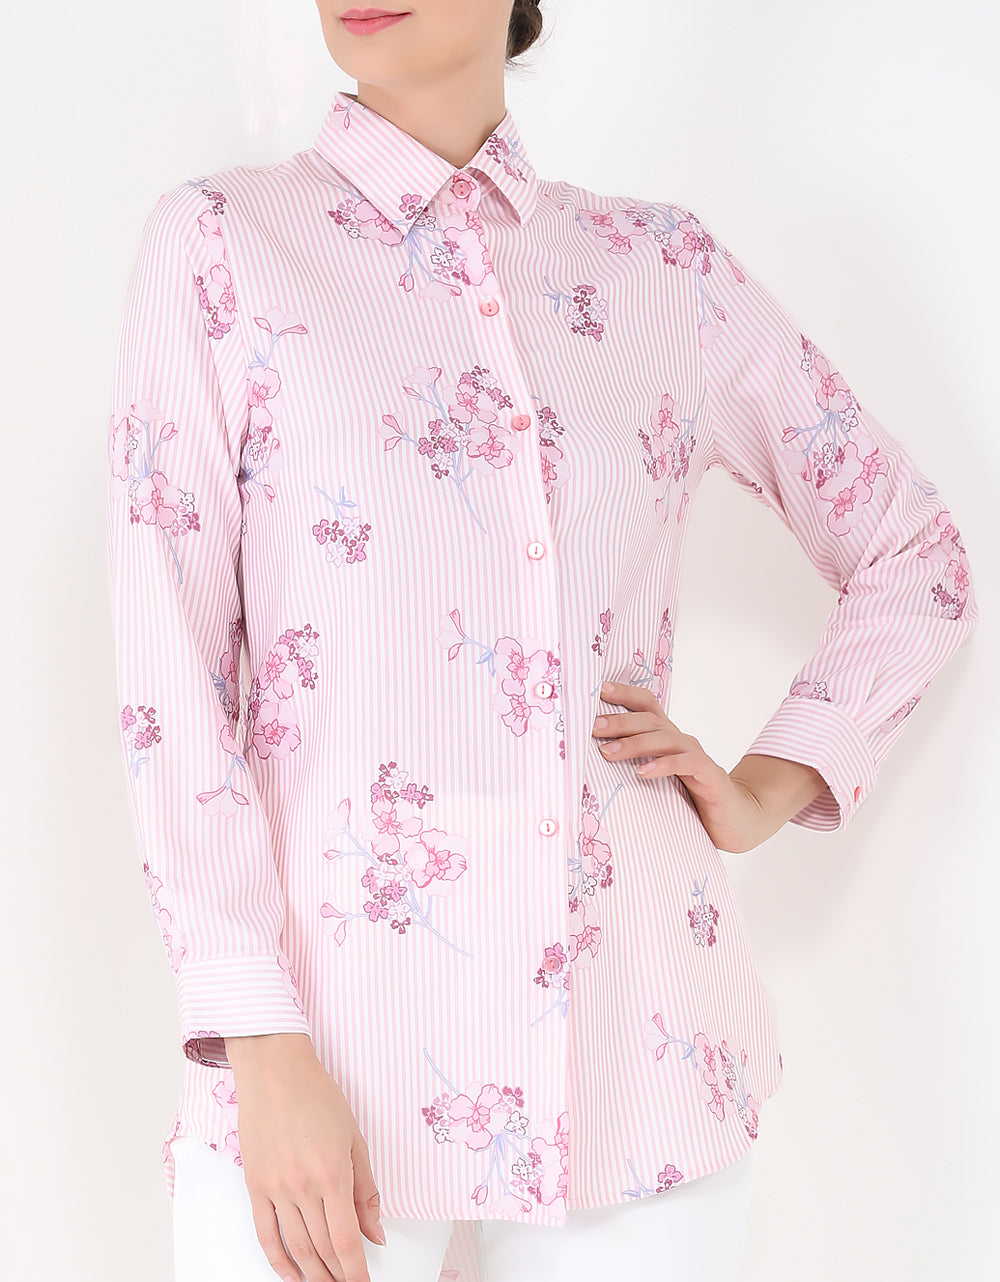 Vienna Small Stripe Tunic - Baby Pink